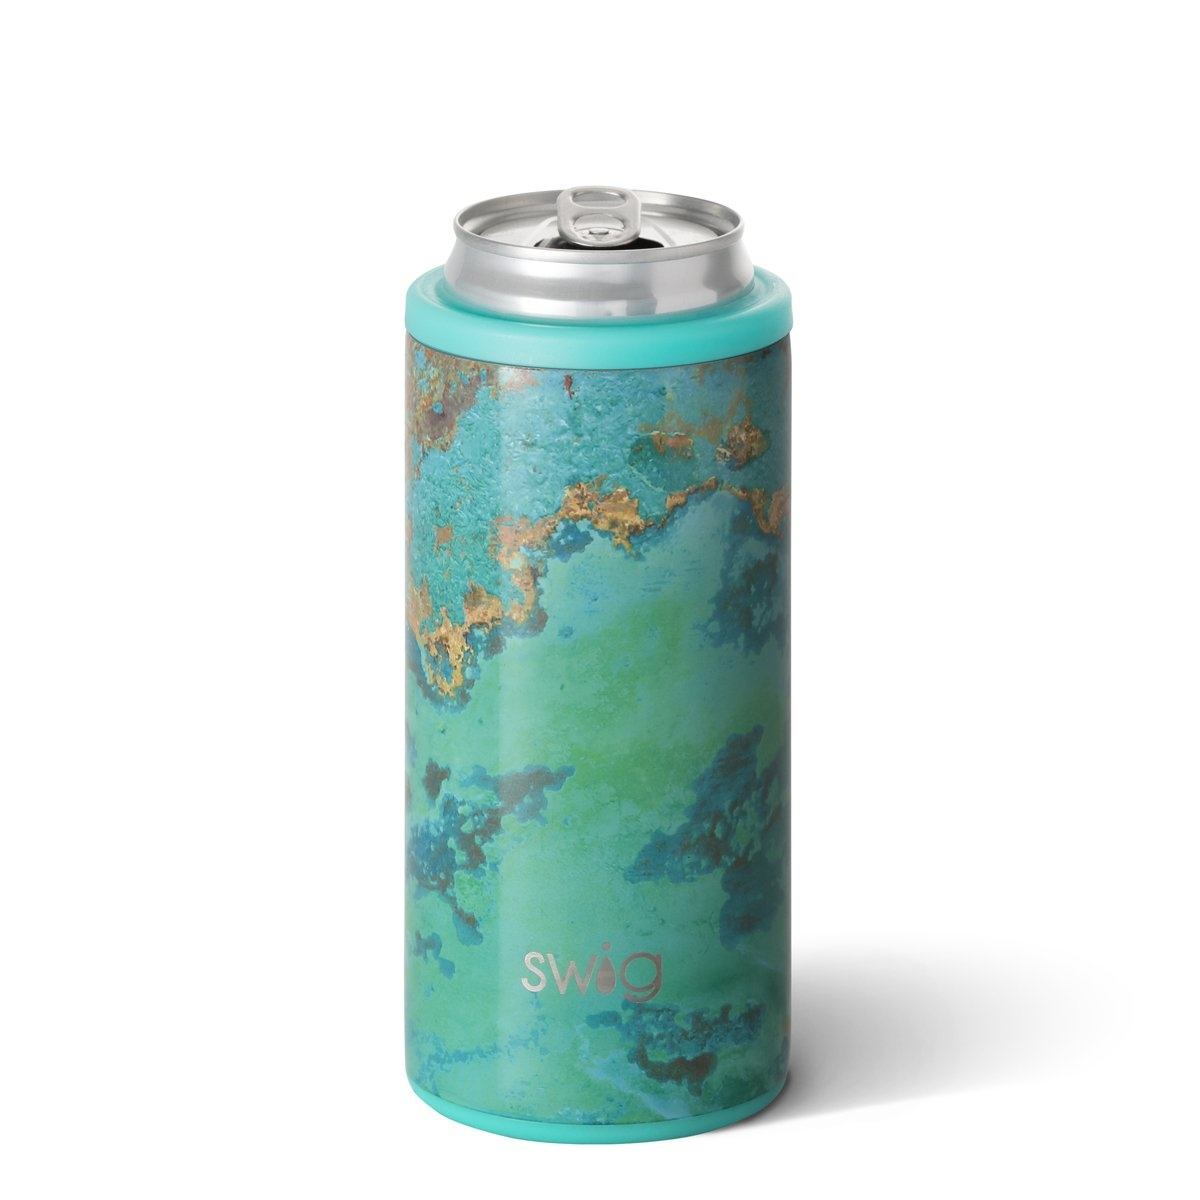 Swig Swig 12oz Can Cooler